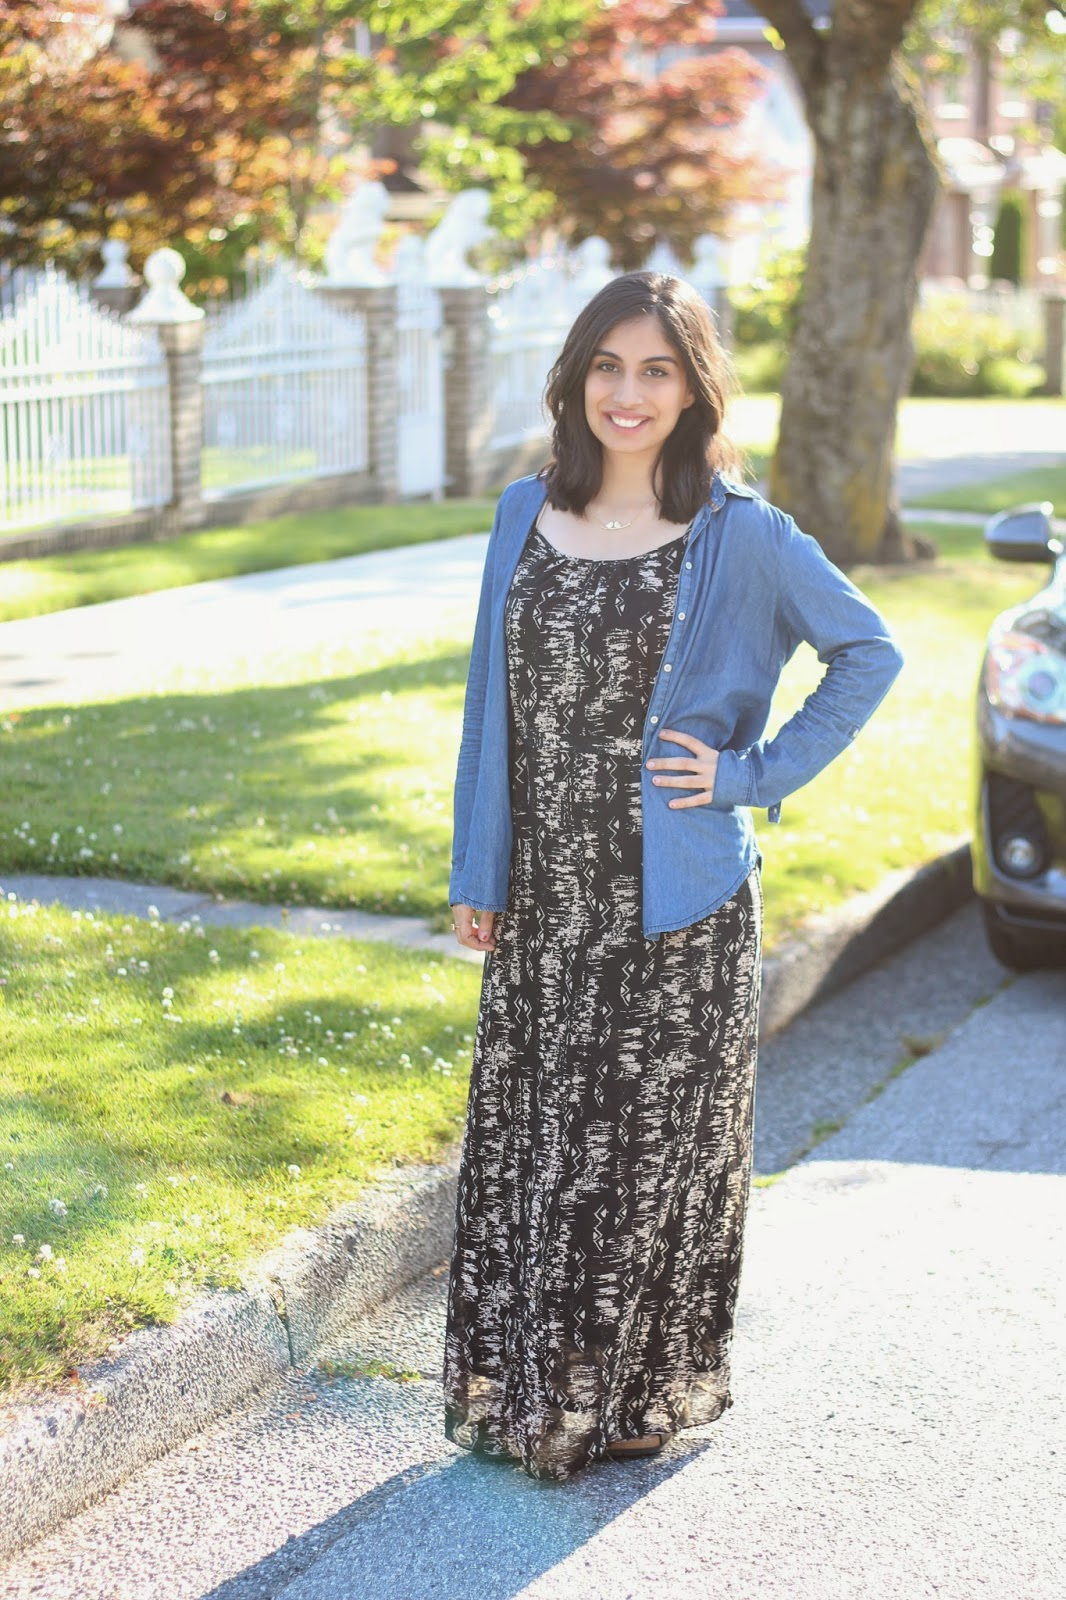 3 ways to wear a maxi dress - maxi dress with chambray shirt